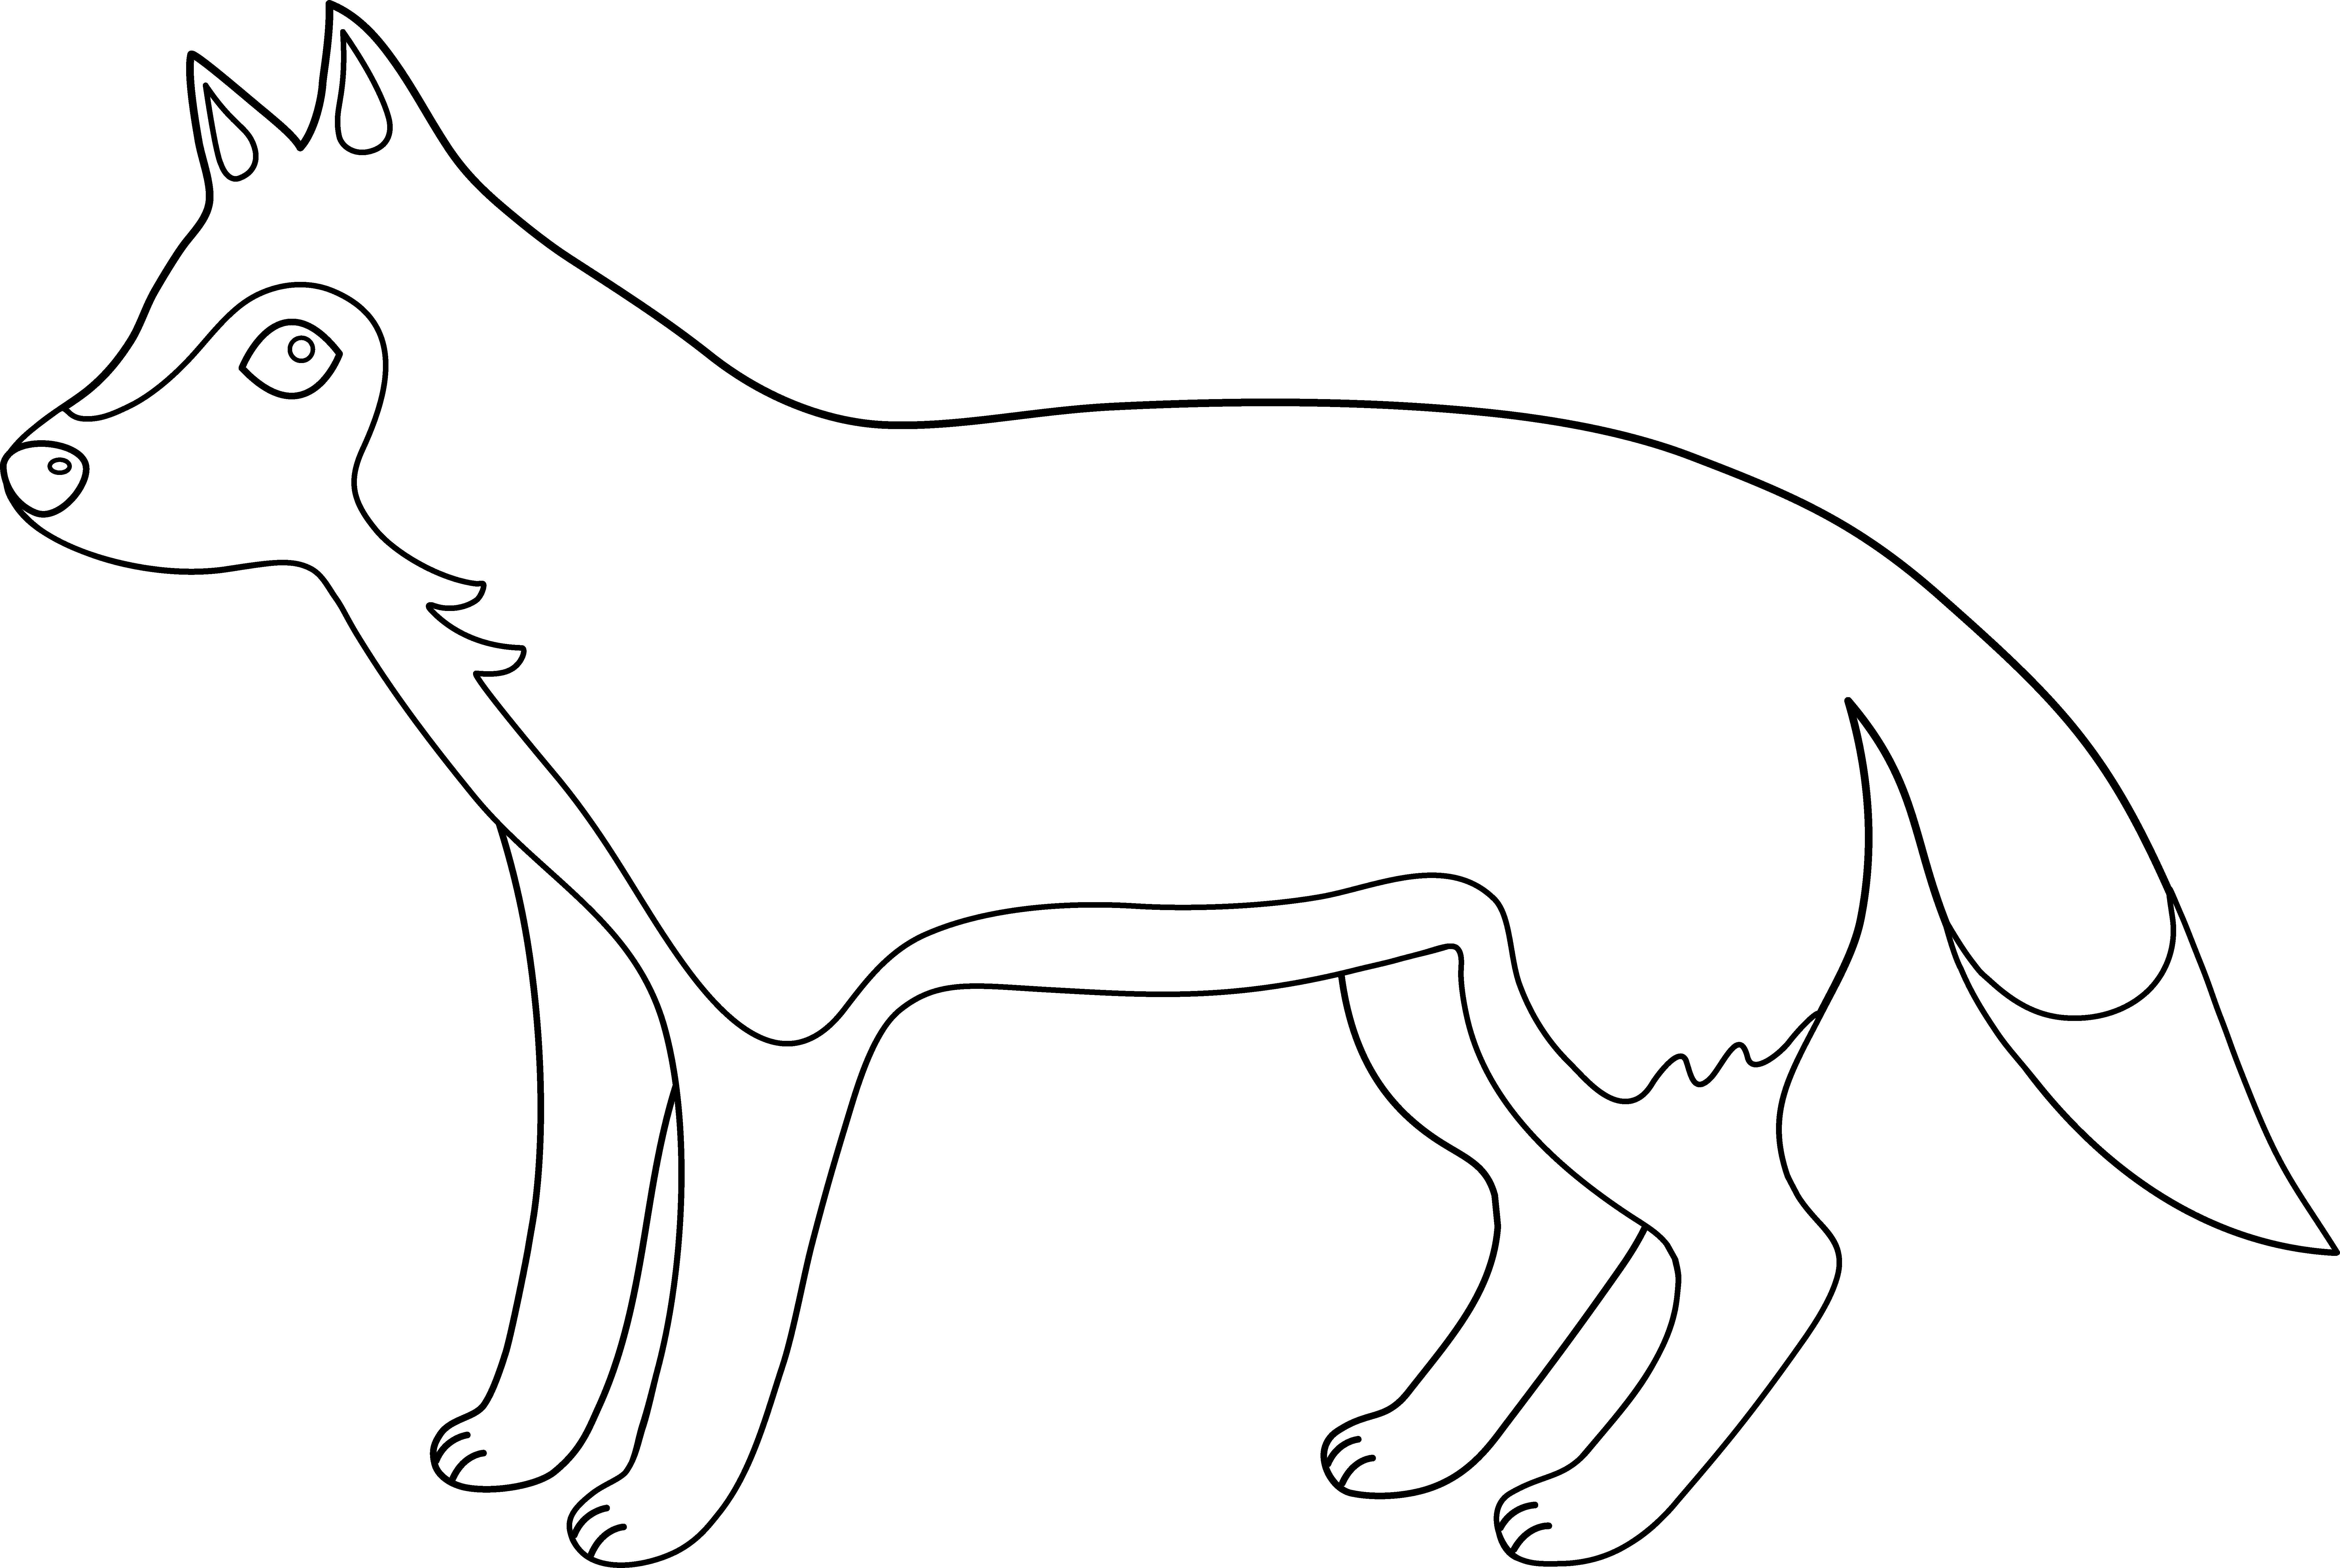 White Wolf clipart black and white Clip Free on Clipart Wolf